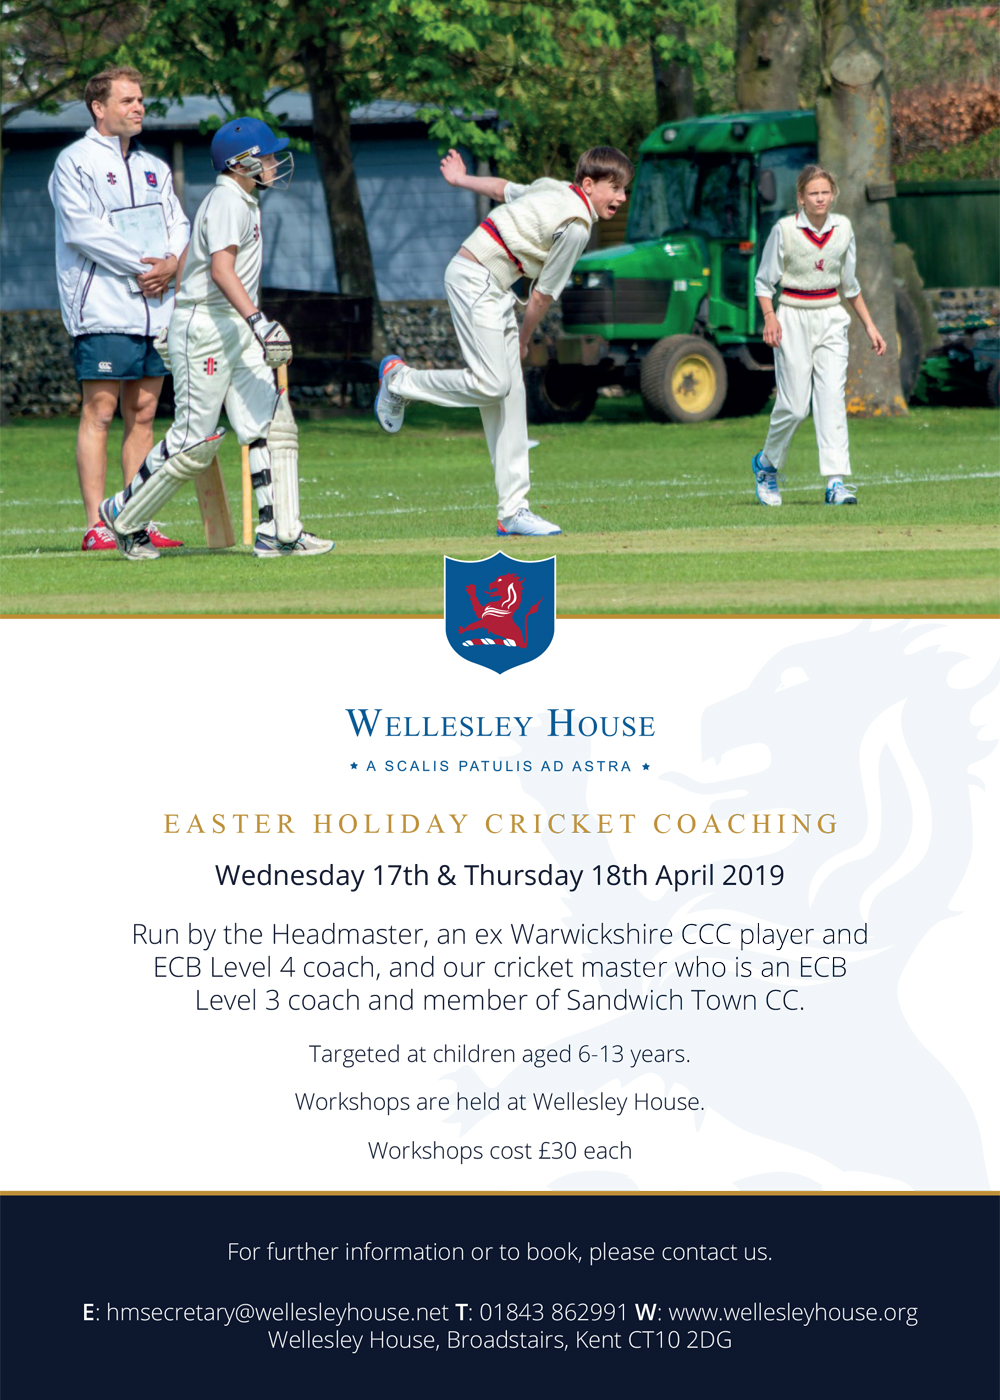 Image for the Easter Holiday Cricket Coaching news article